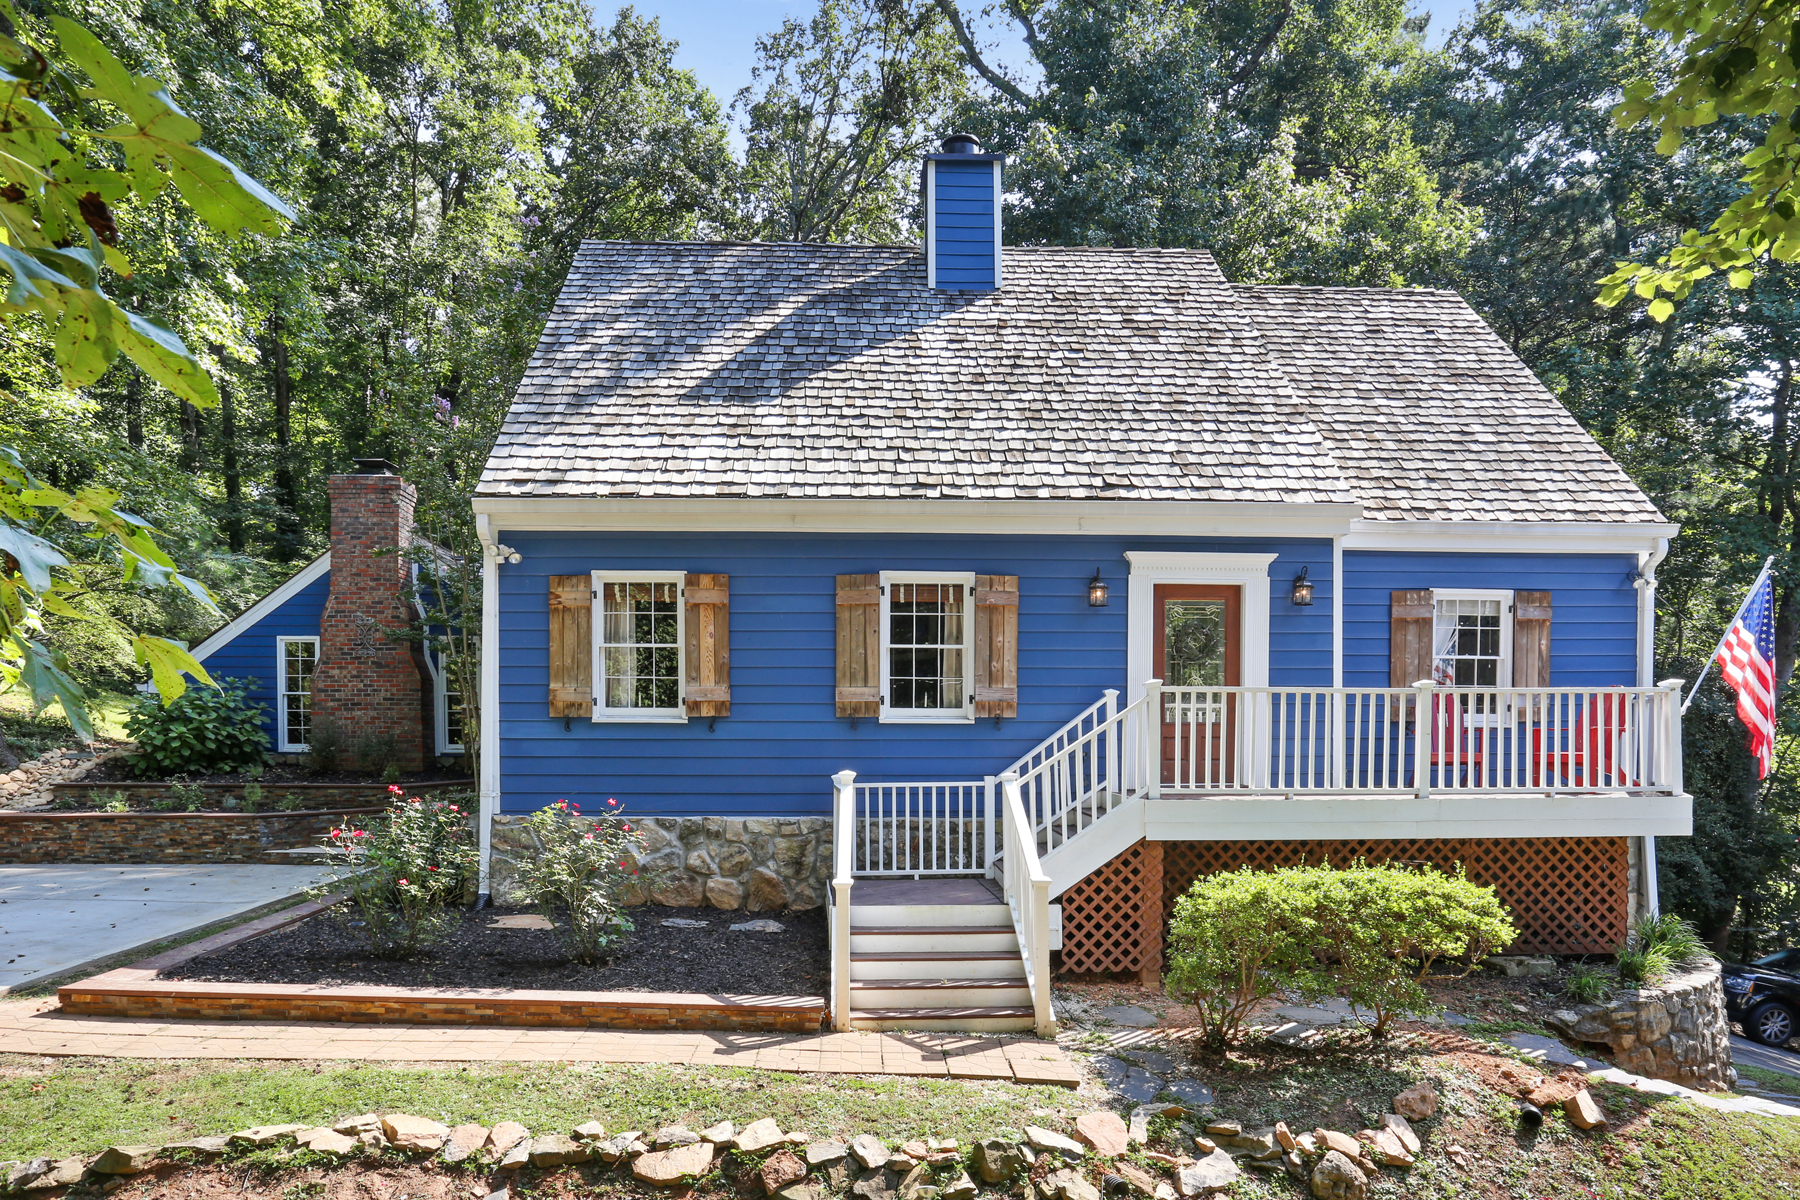 Single Family Home for Sale at Charming Cape Cod In Roswell 2872 McPherson Rd Roswell, Georgia 30075 United States